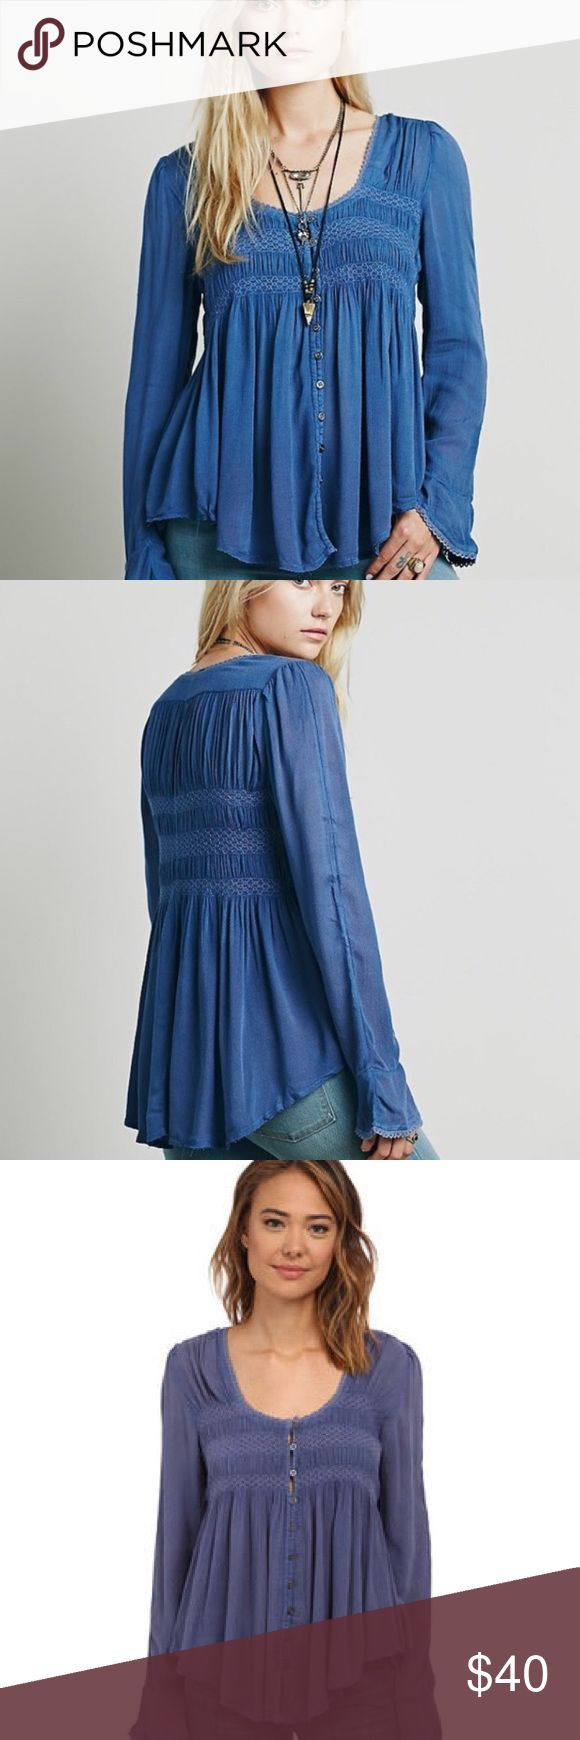 Free People Blue Bird Smocked Top Free People Blue Bird gauzy smocked swing button down top in Washed Indigo.  Features crochet trim and raw hem.  100% rayon.  In excellent condition. Free People Tops